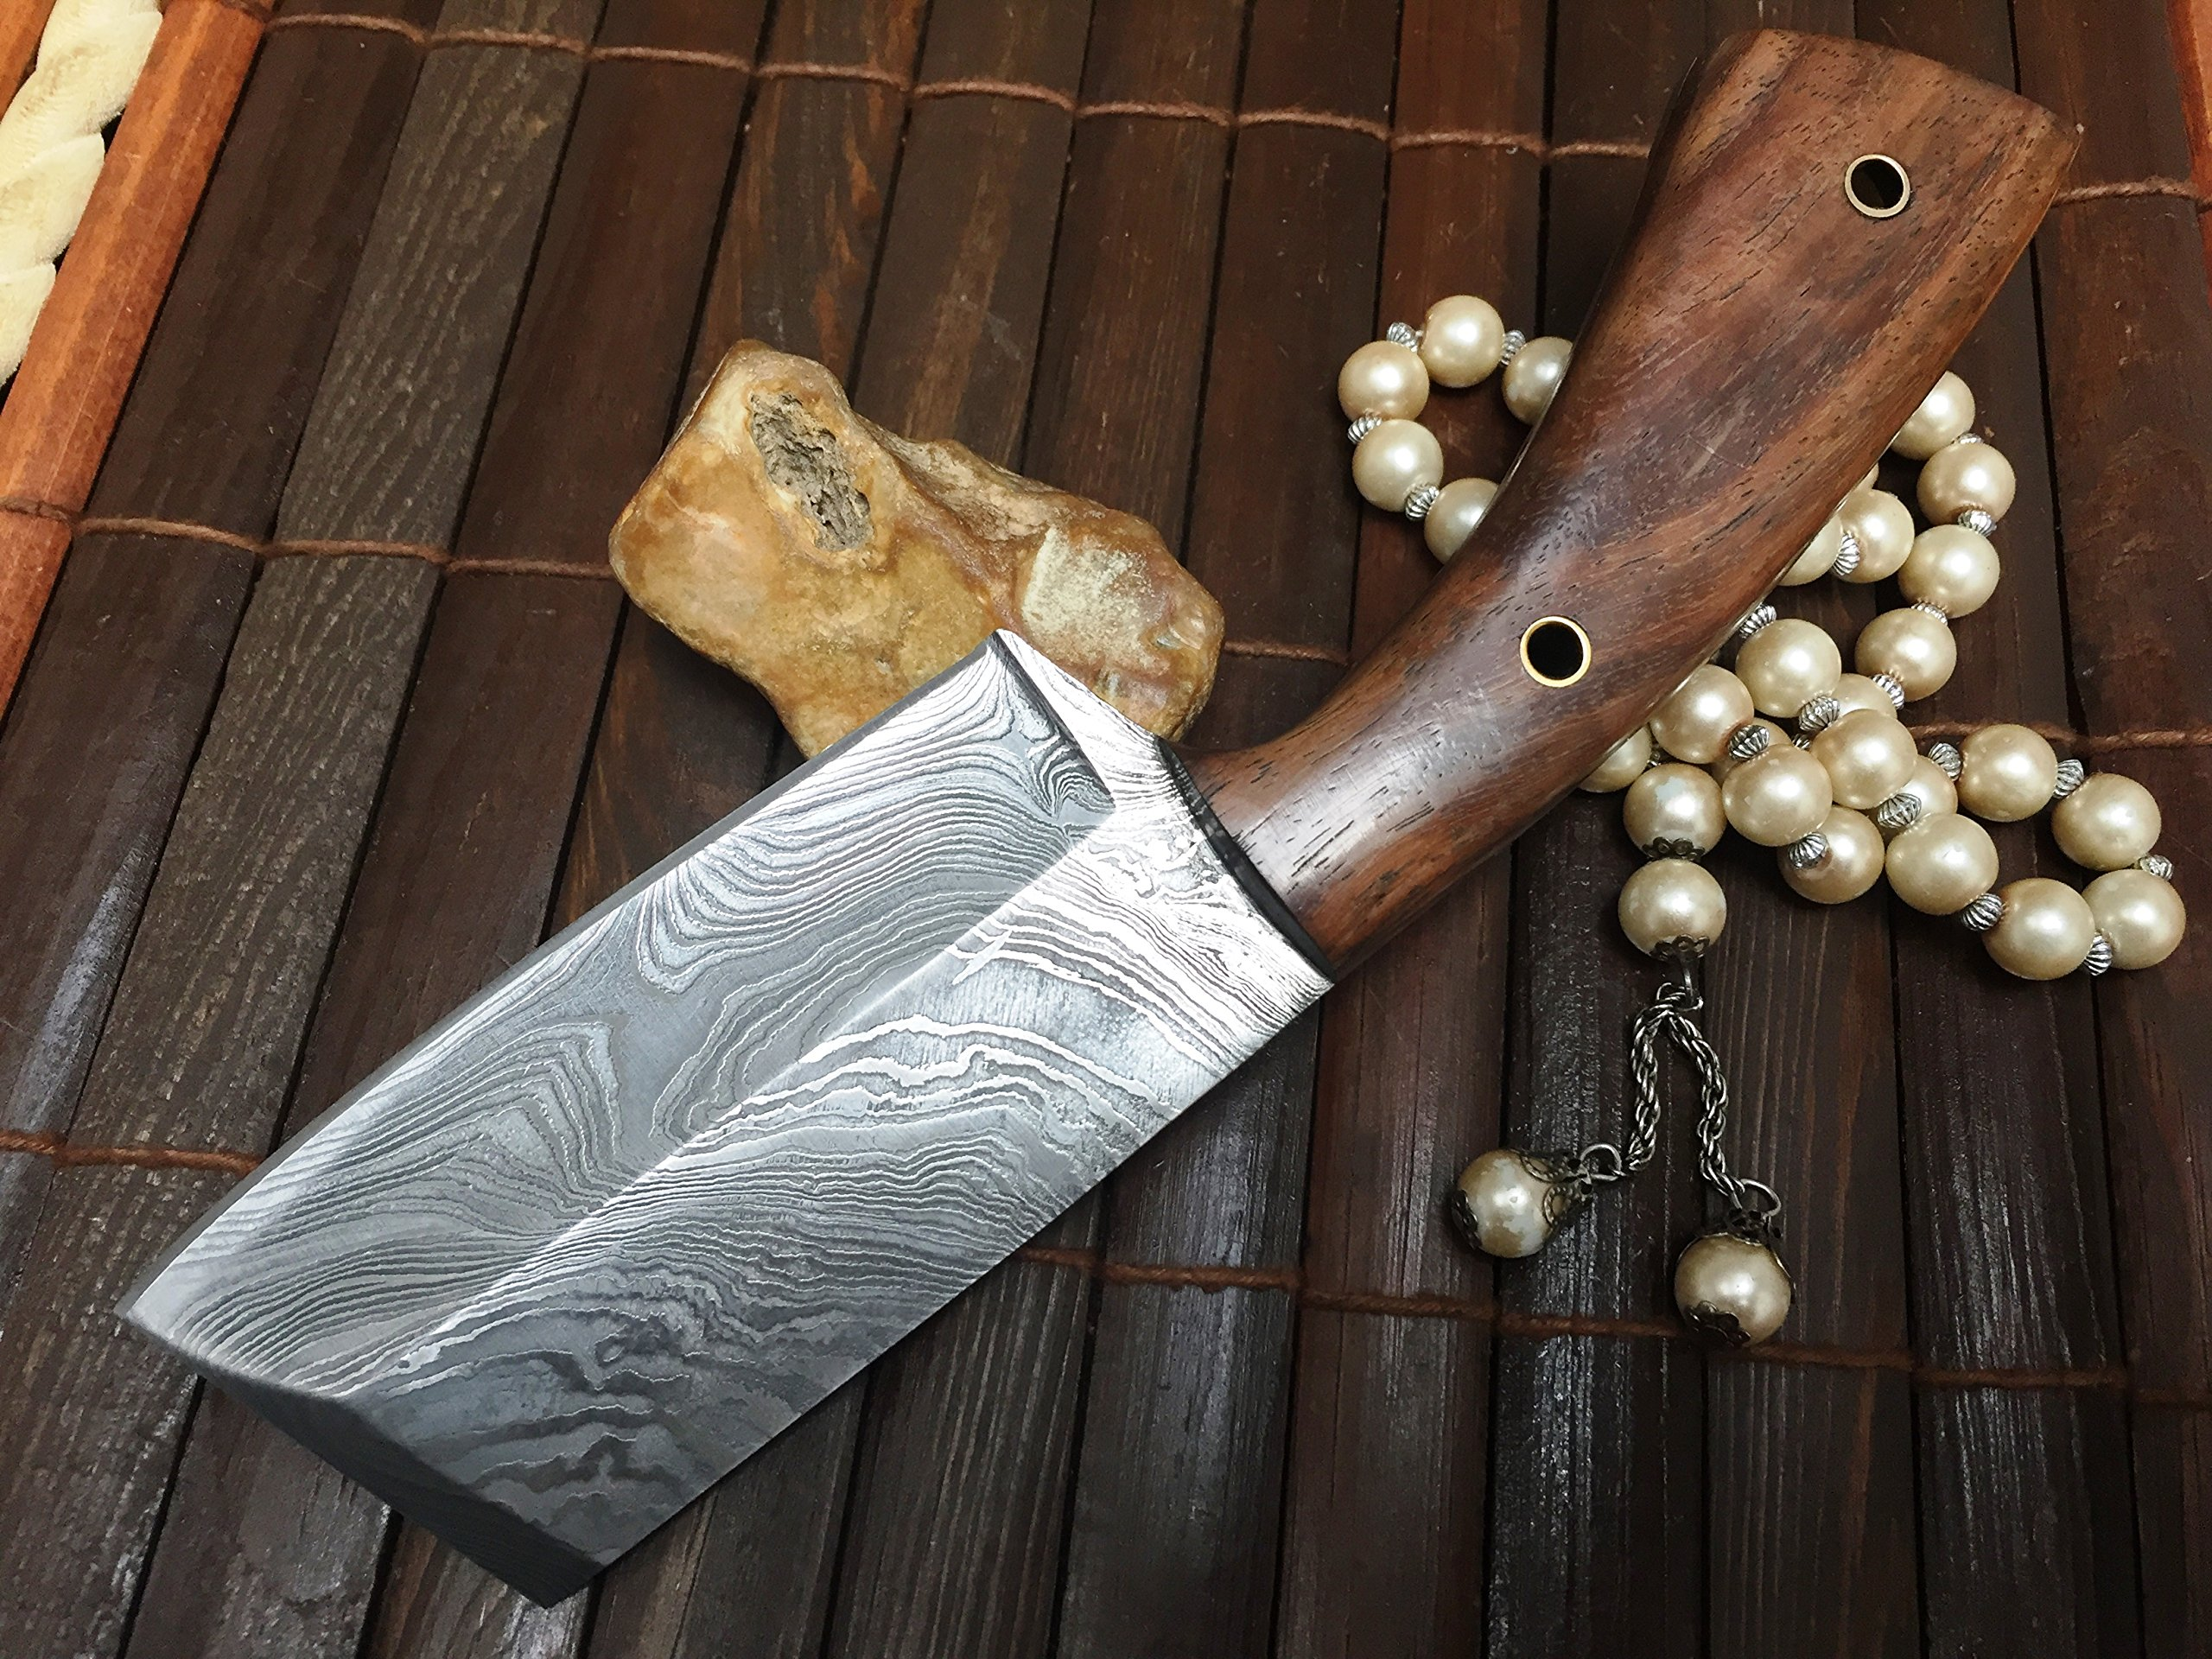 Damascus Steel Hunting Knife Damascus Chef Knife with Sheath by Perkin (Image #4)